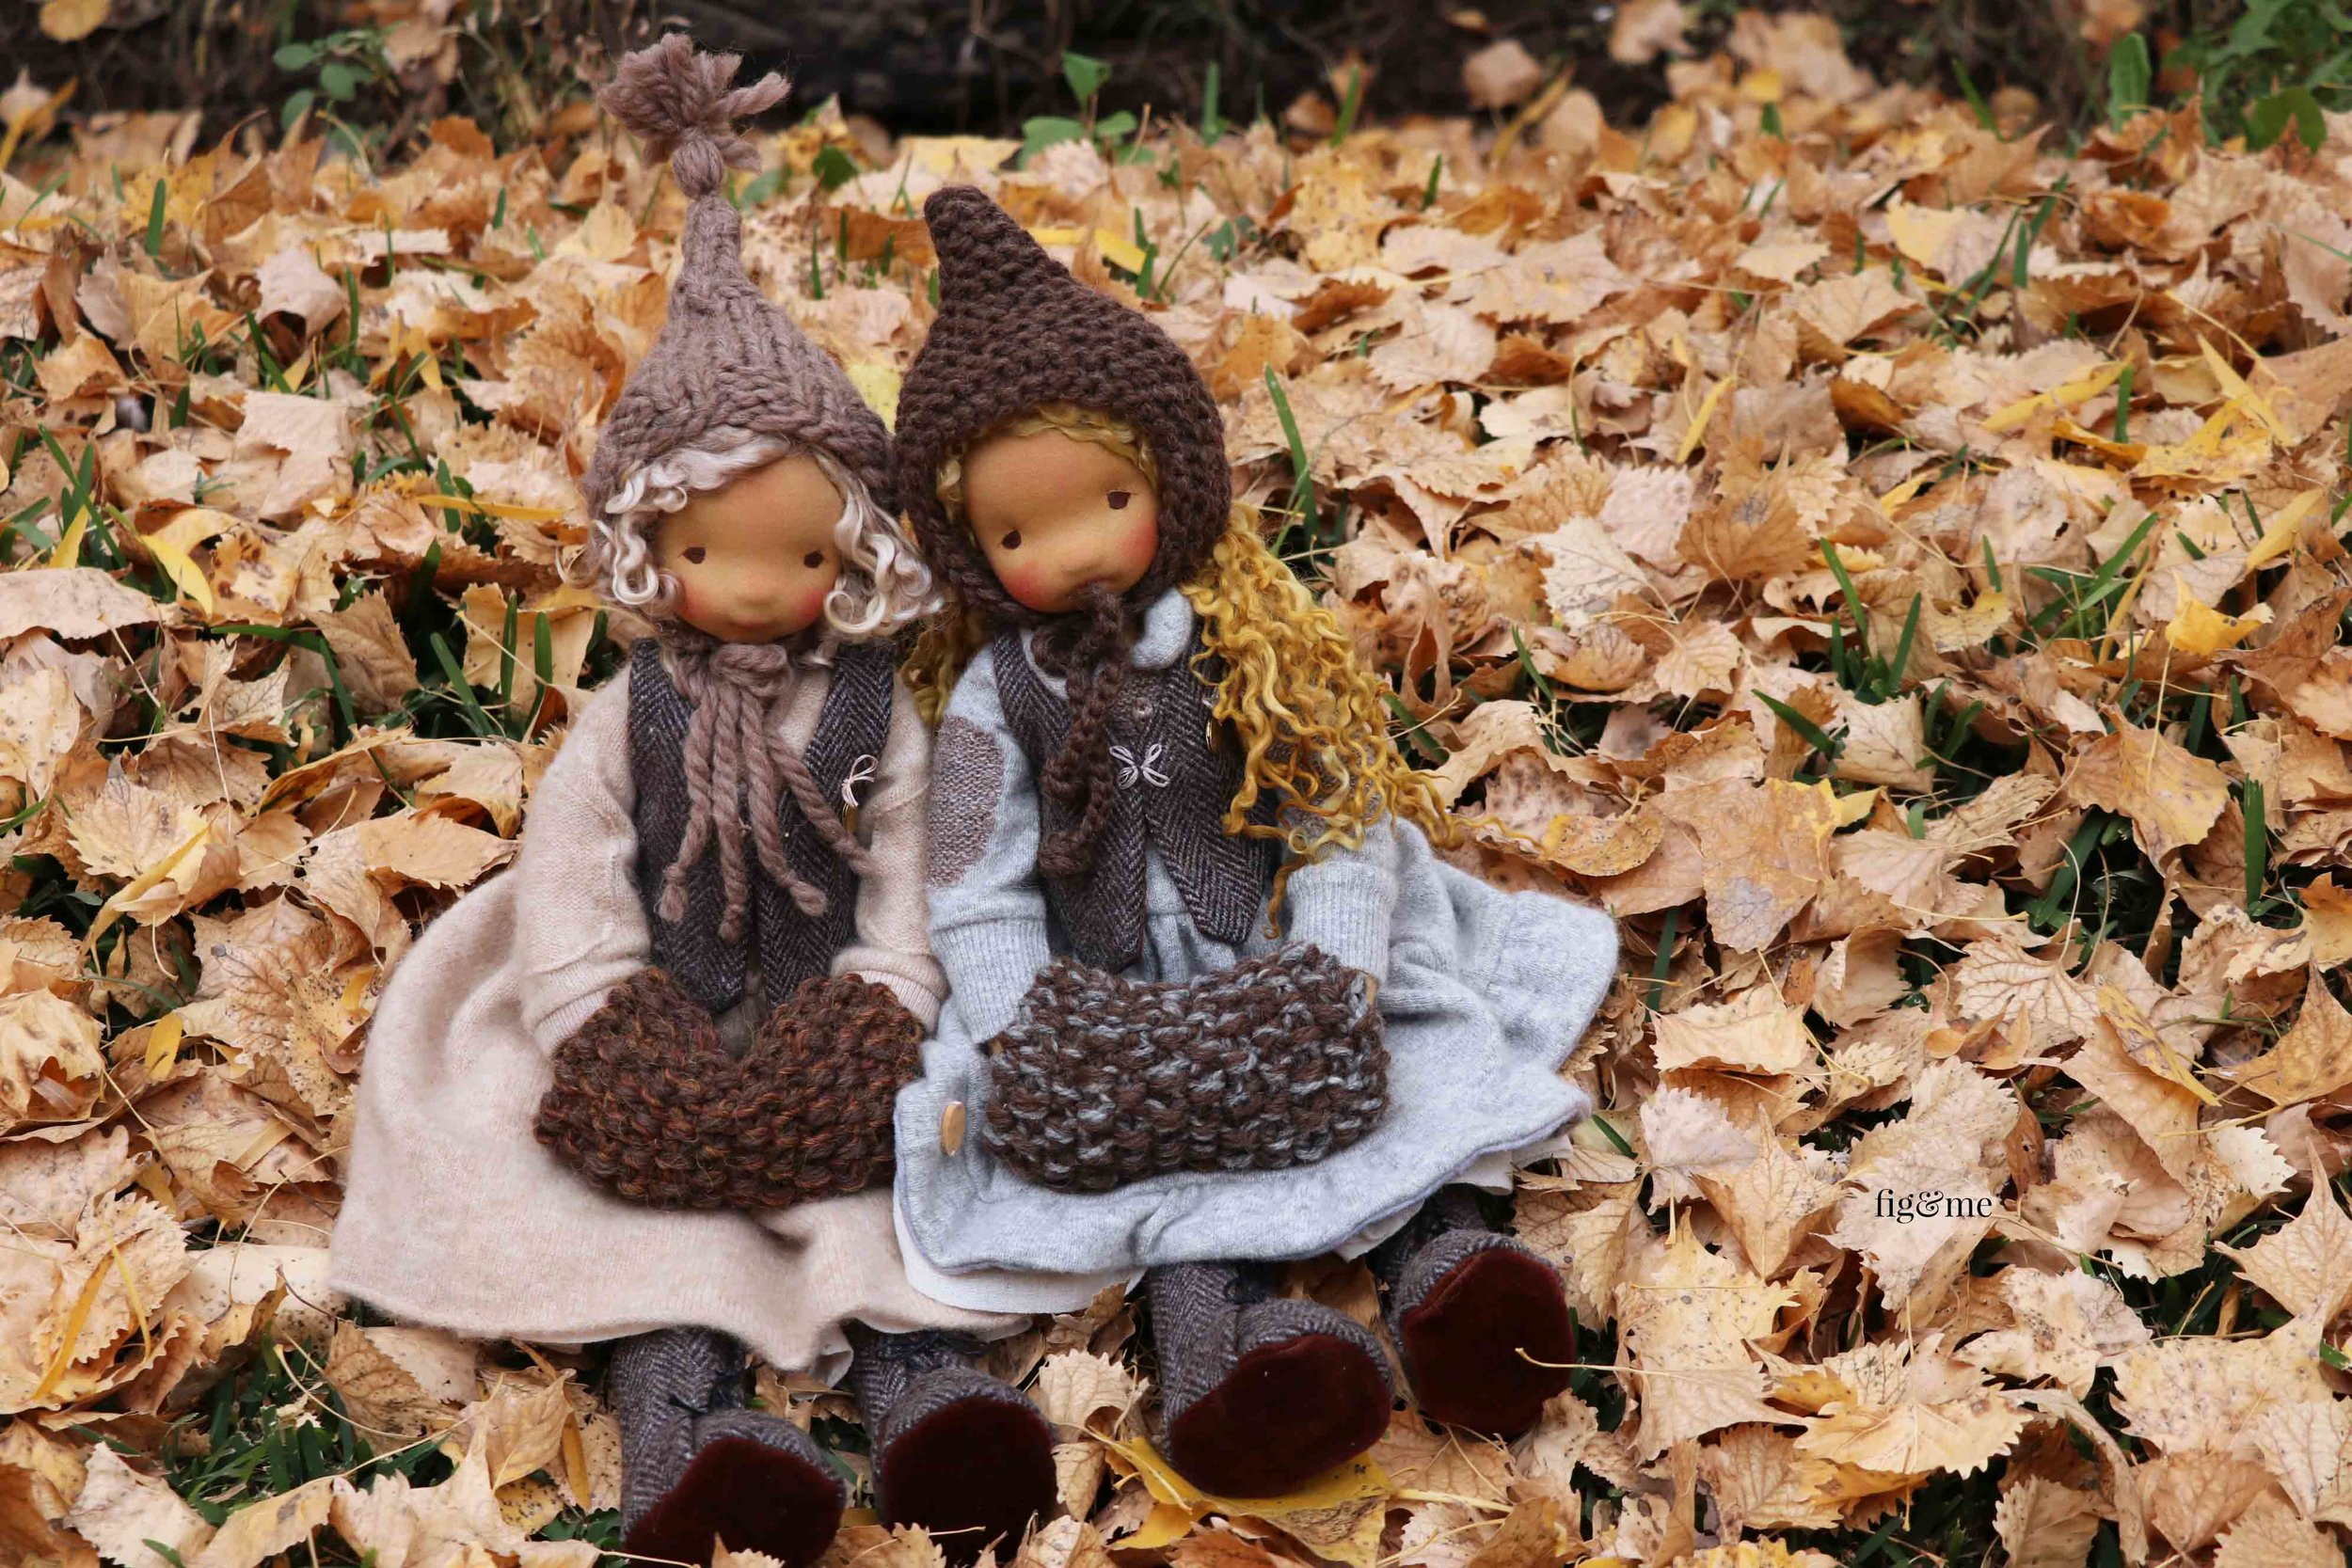 Little Winter and Little Mori, two natural fiber art dolls by fig and me.